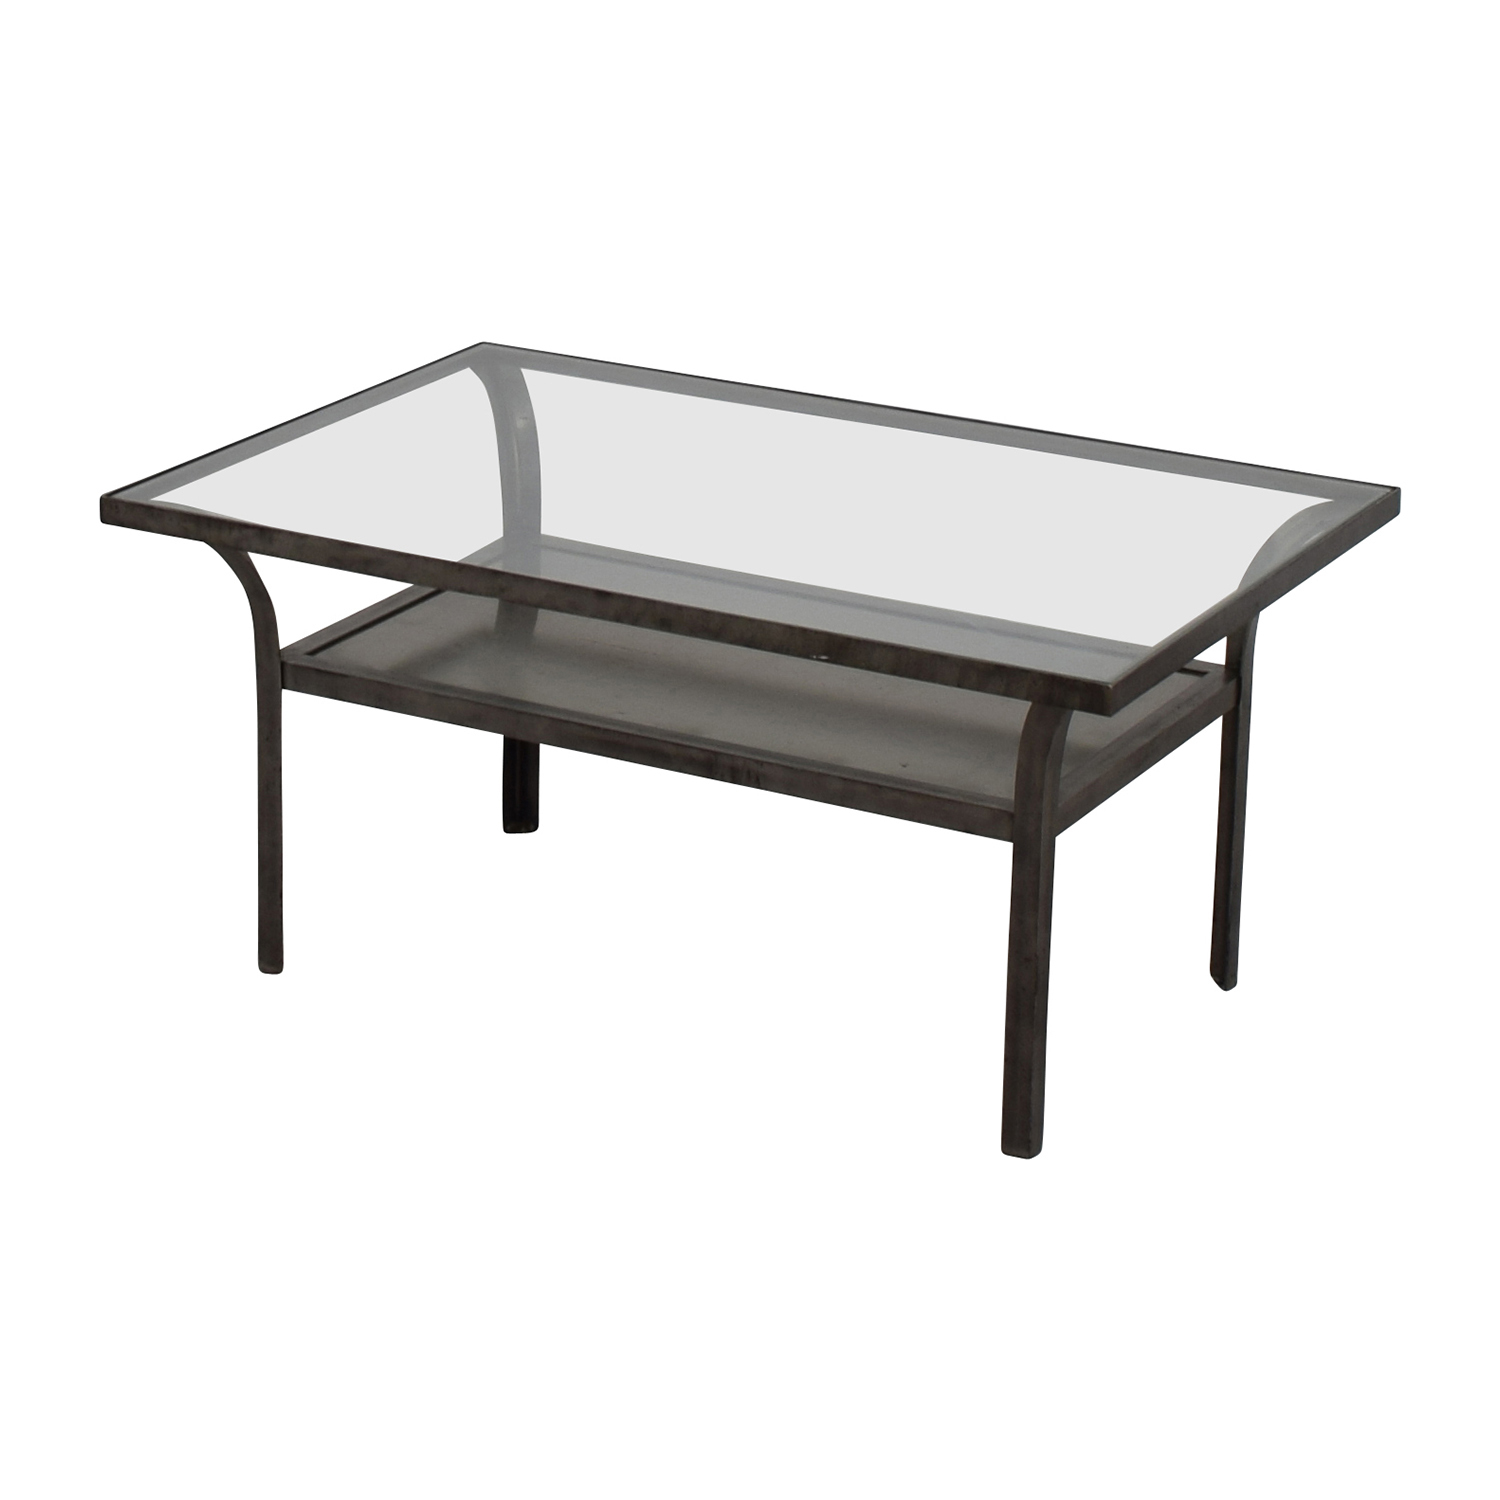 90 off crate and barrel crate and barrel metal and glass coffee table tables Used glass coffee table